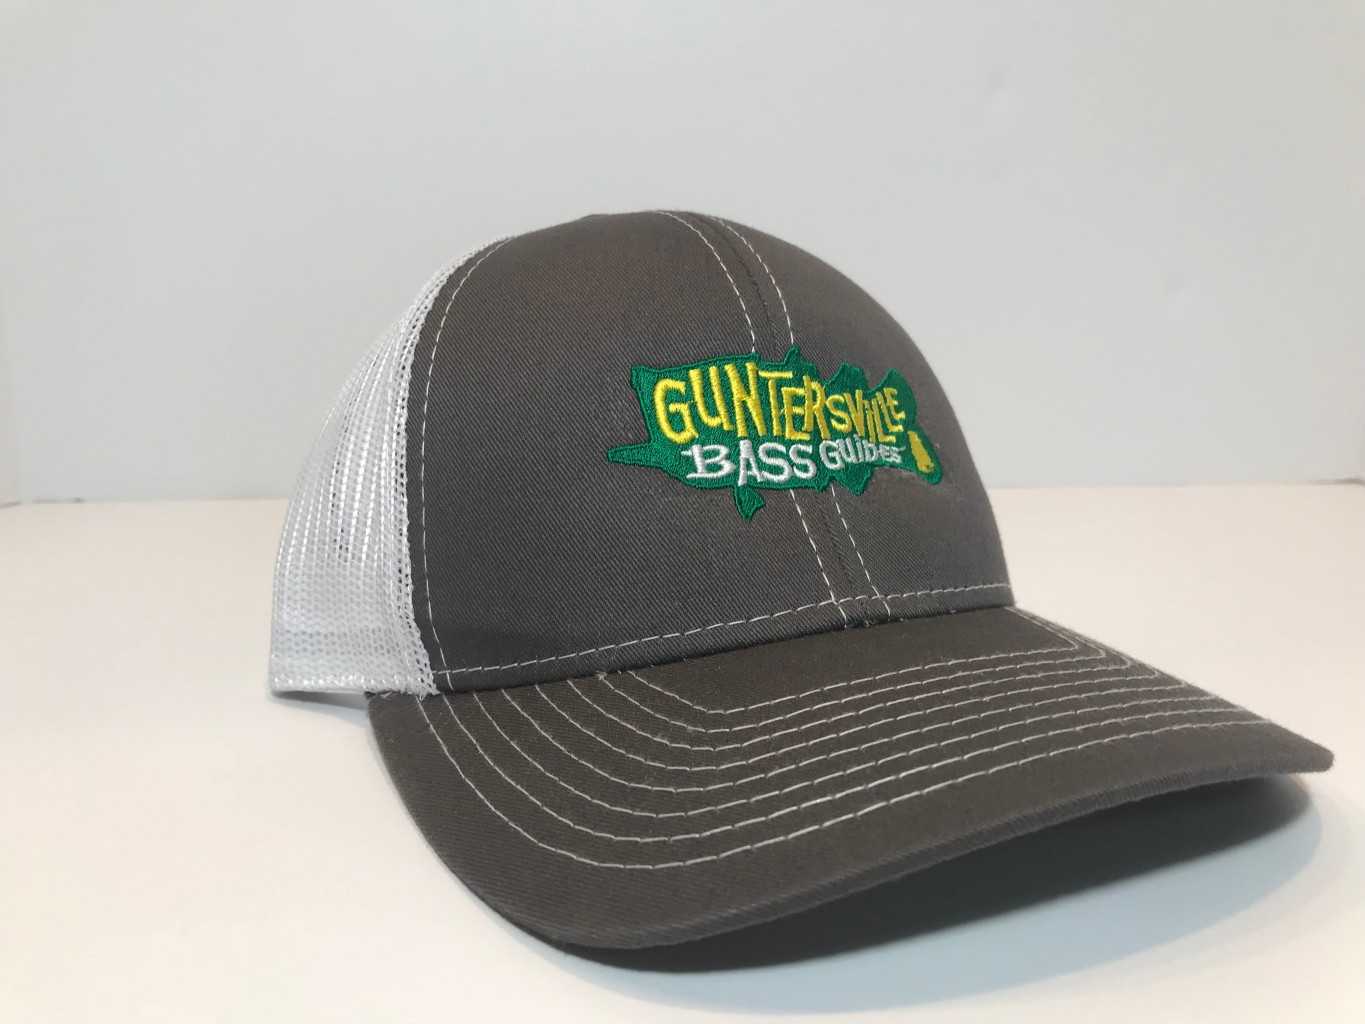 GUNTERSVILLE BASS GUIDES HATS